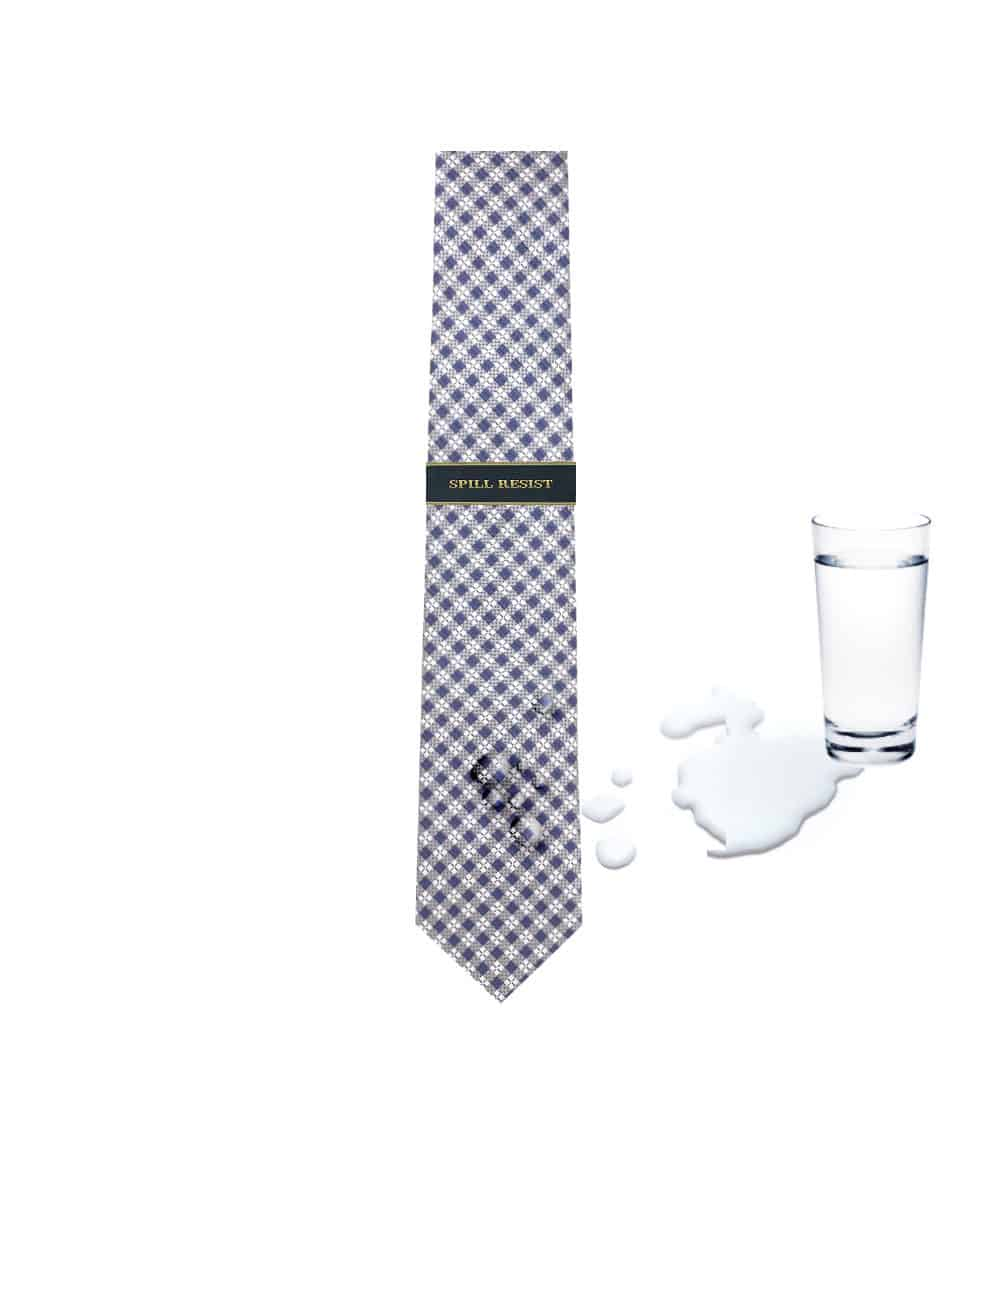 Blue and Grey Checks Spill Resist Woven Necktie NT26.9